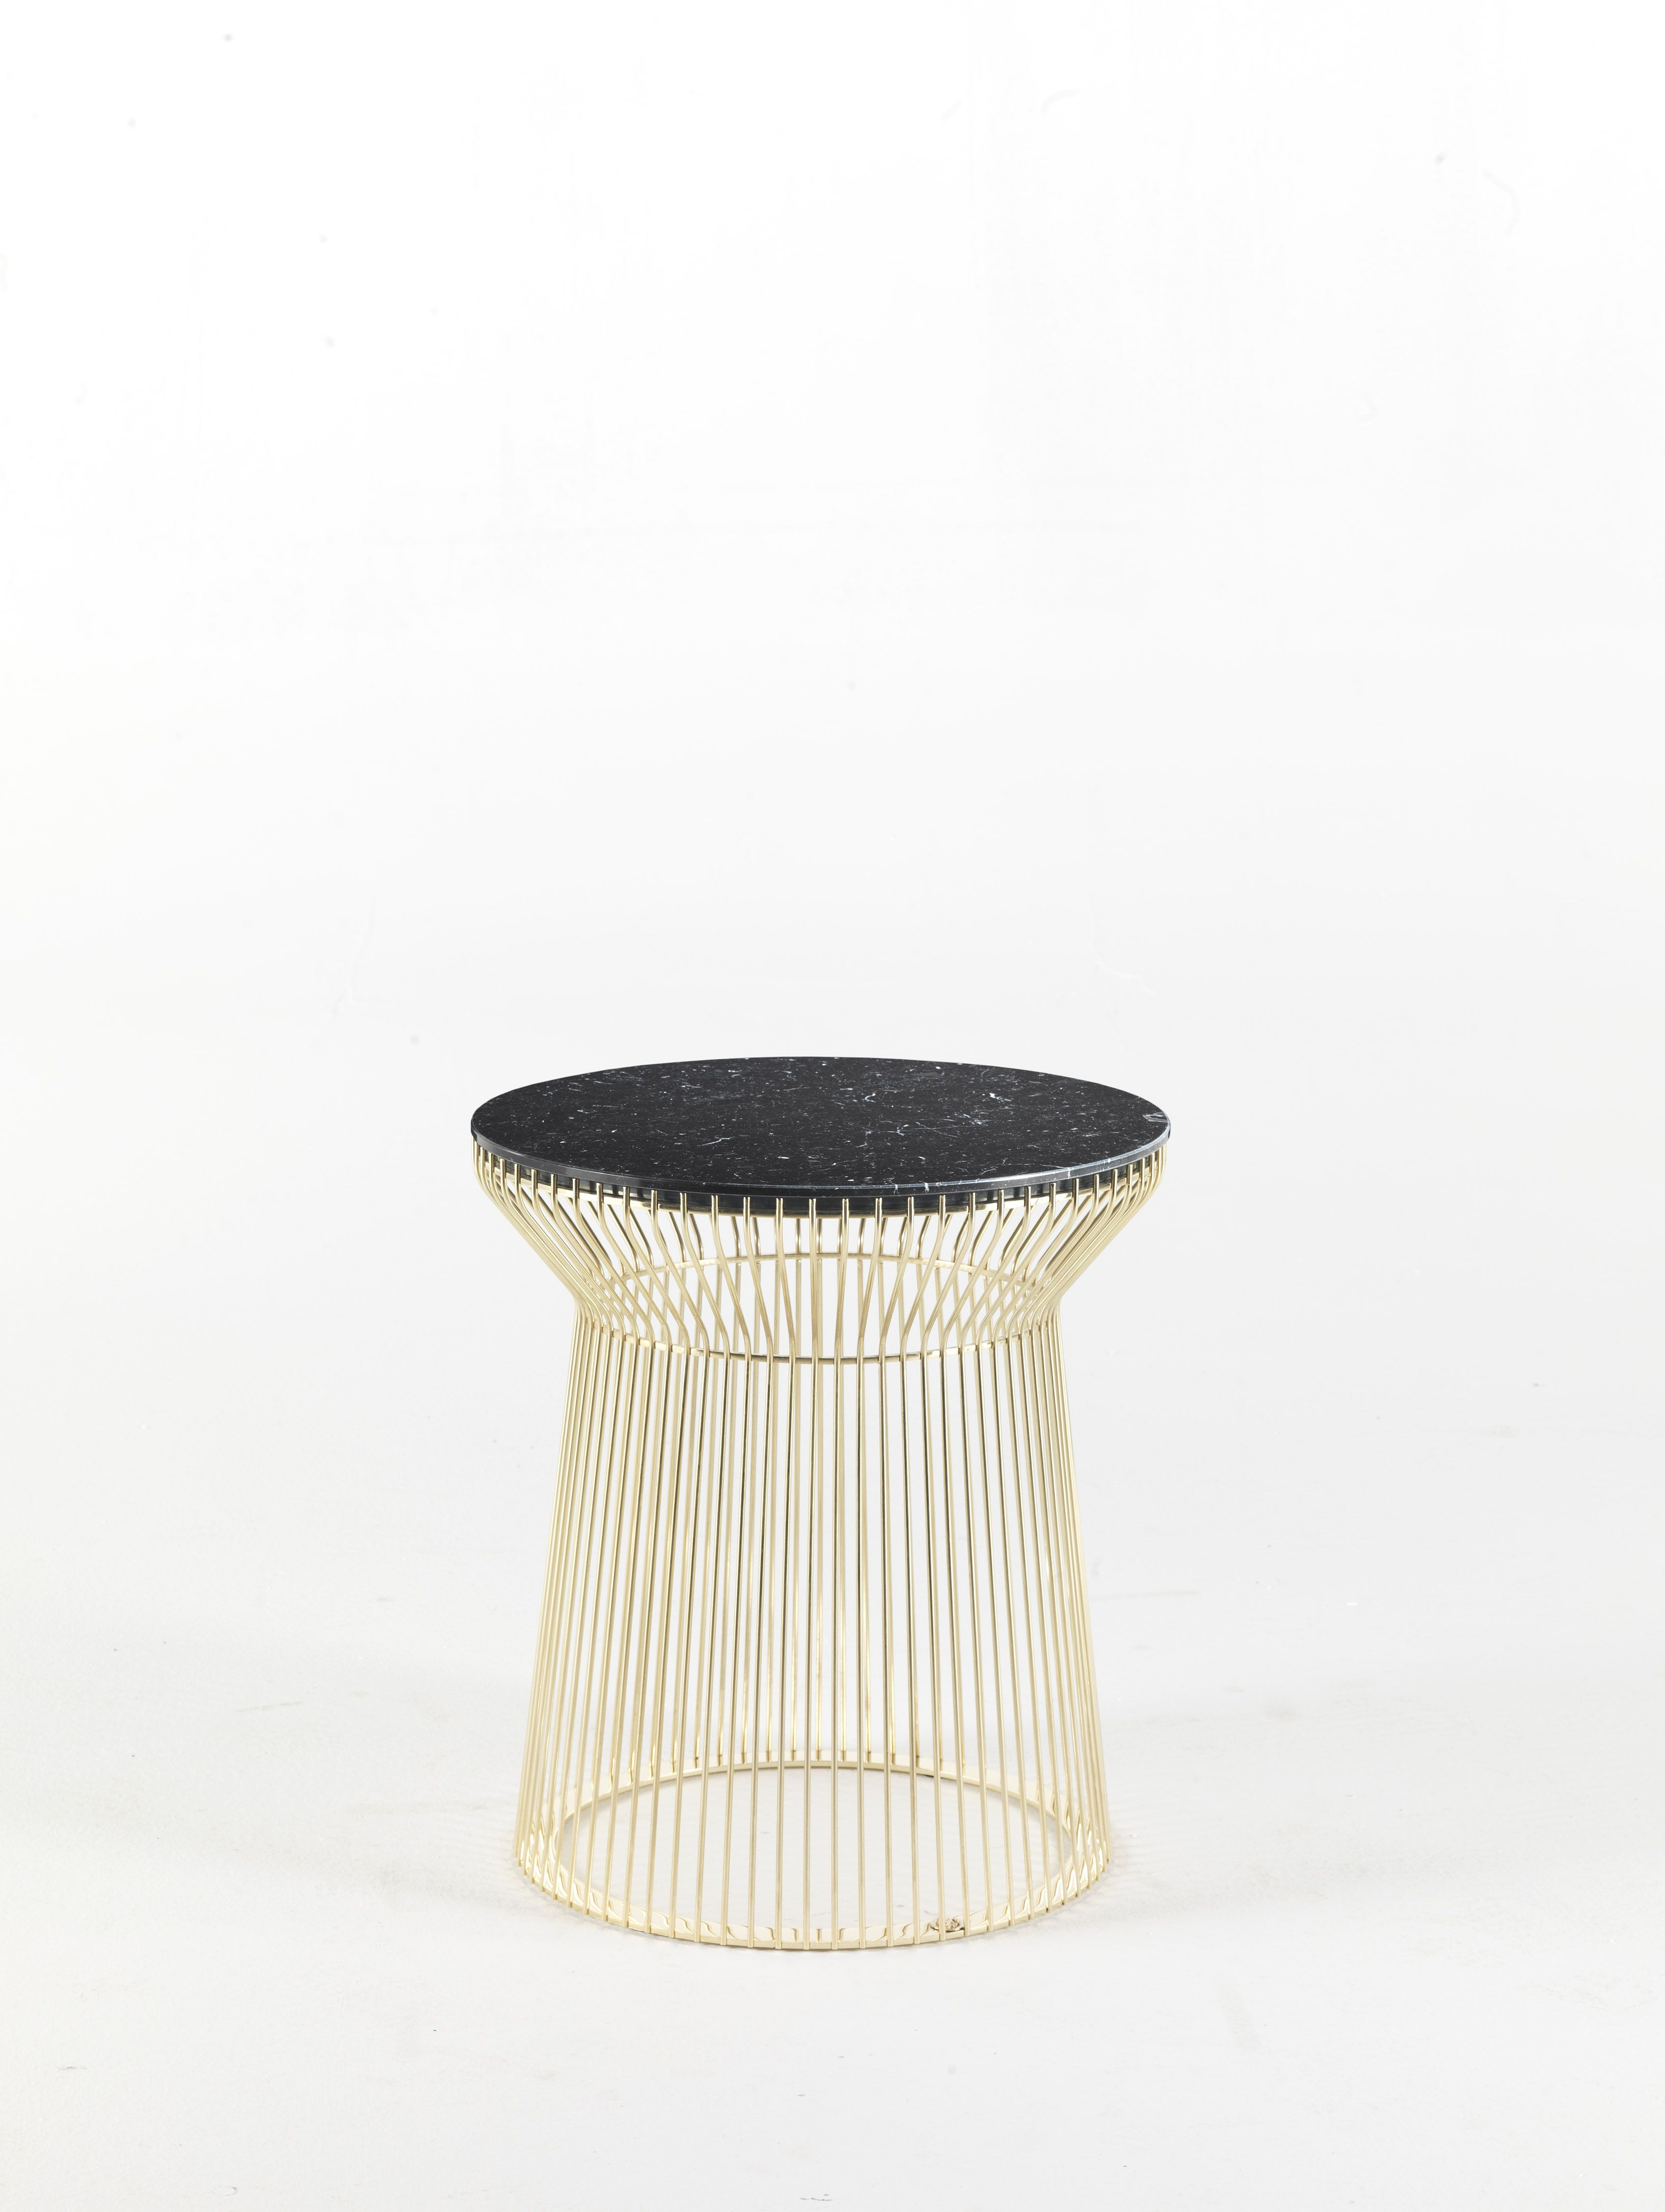 Black and gold side table roberto cavalli home interiors black and gold side table roberto cavalli home interiors keyboard keysfo Choice Image